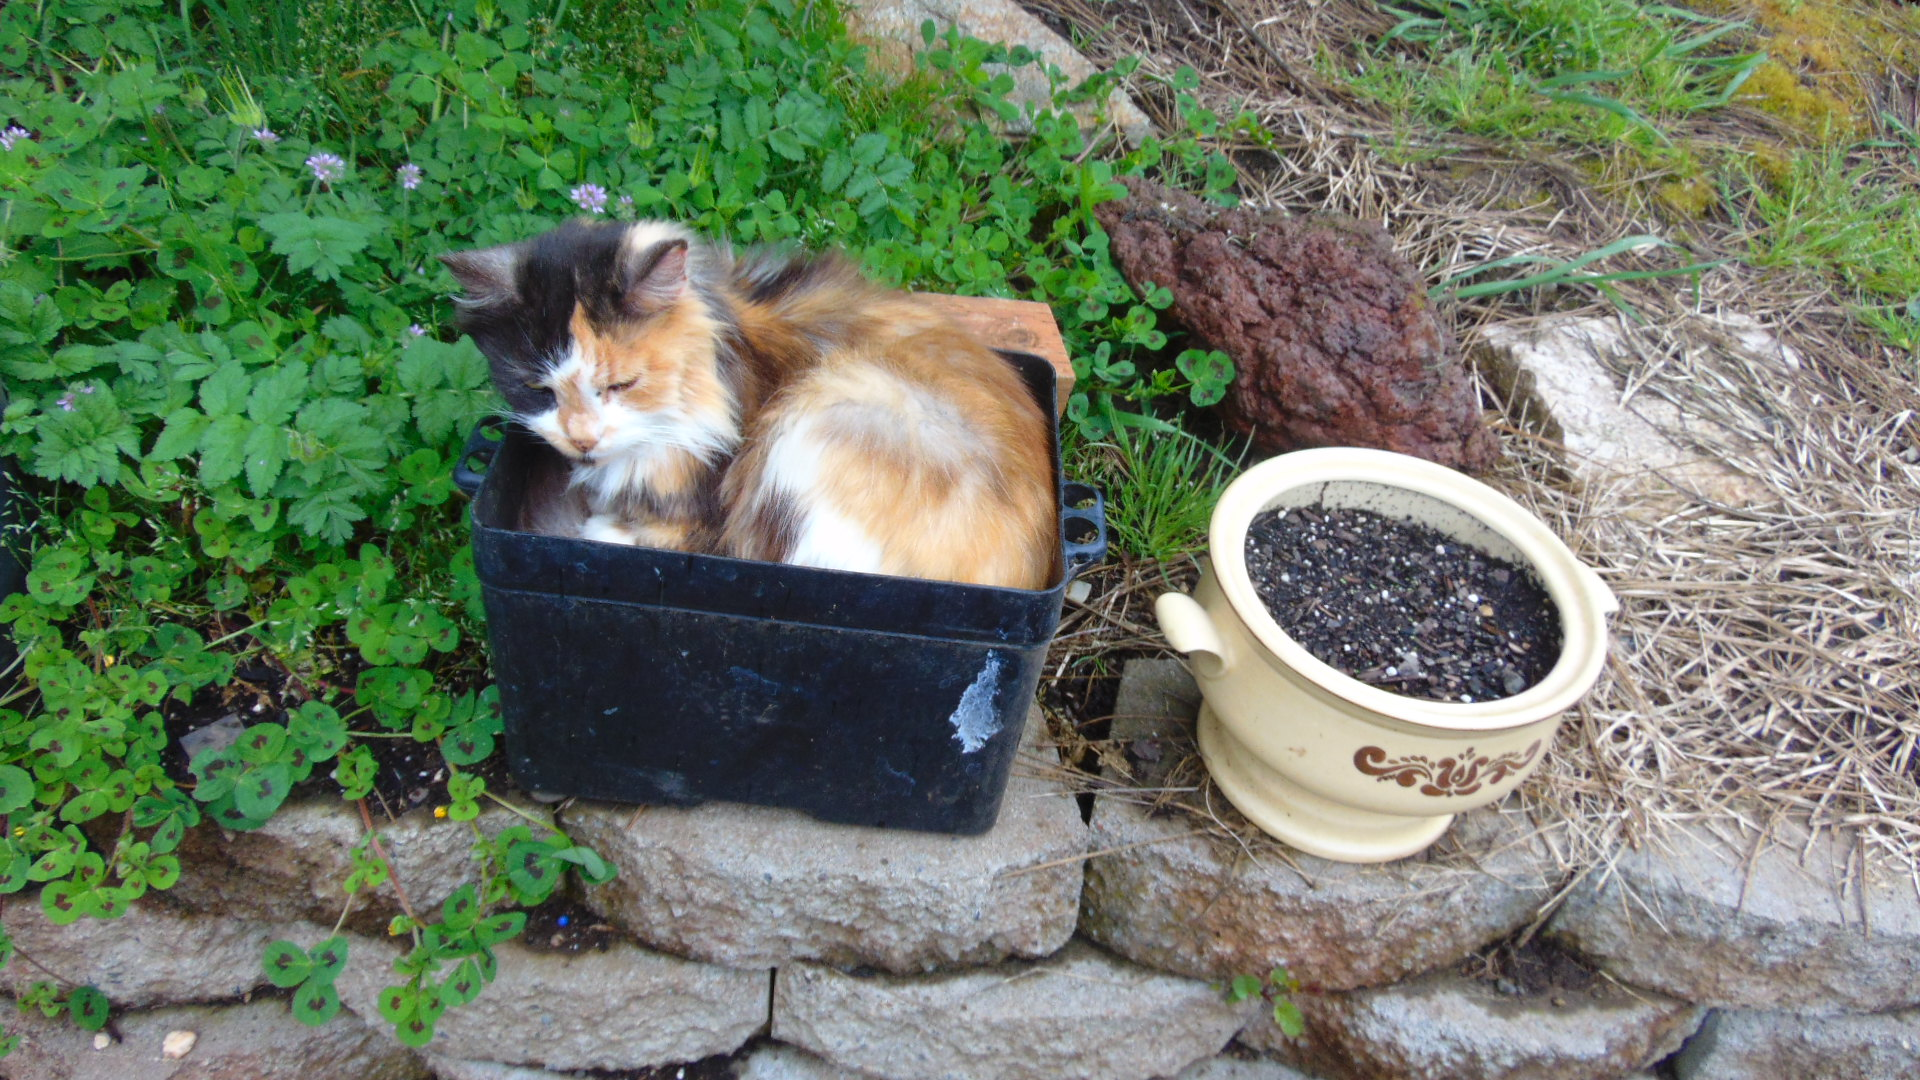 Something is growing in the flower pot.